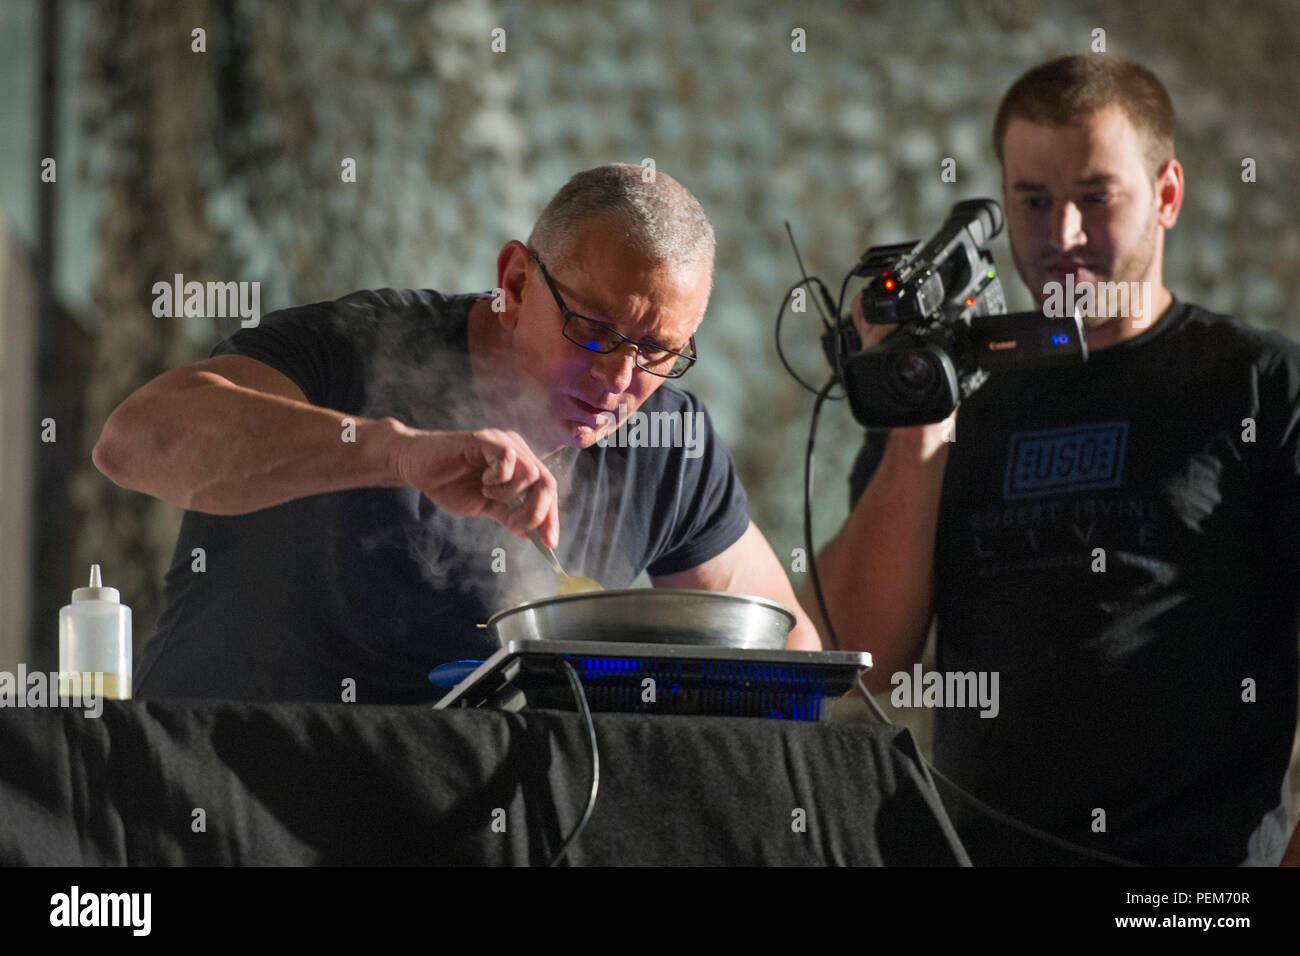 Chef Robert Irvine prepares a meal during a USO show at